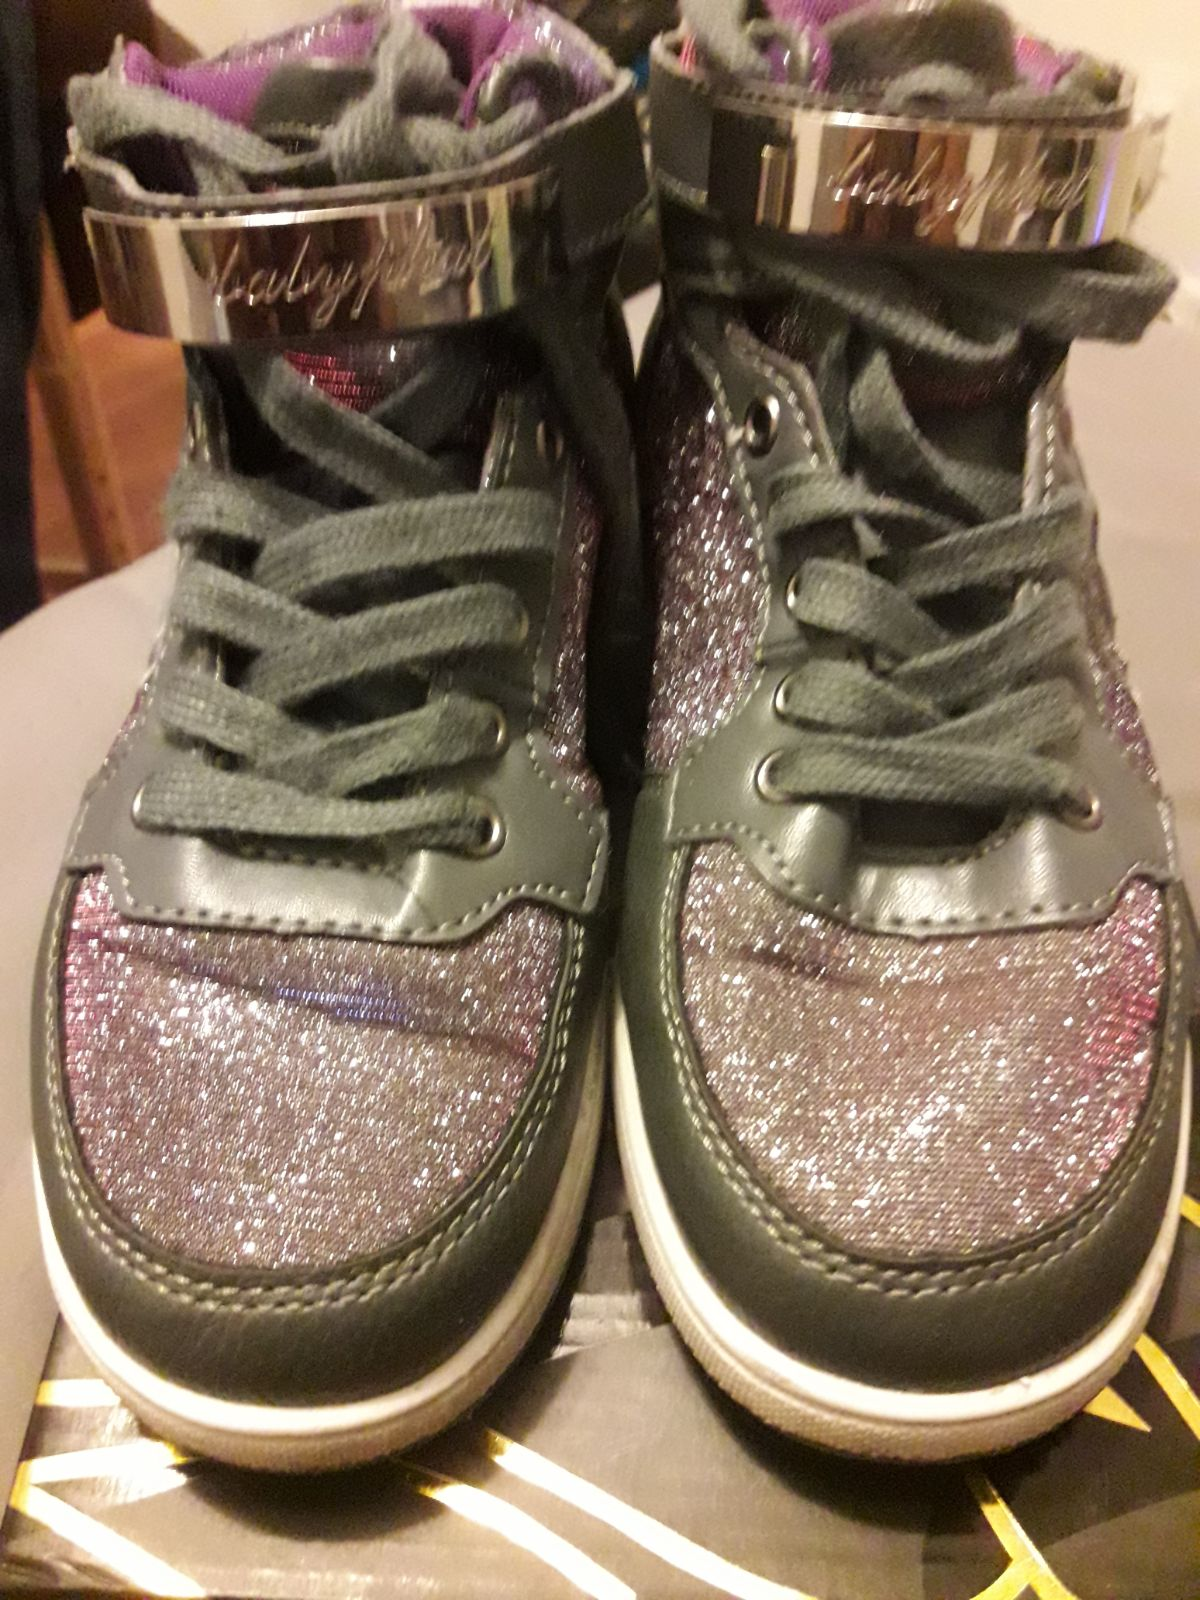 Baby Phat Shoes for Teens